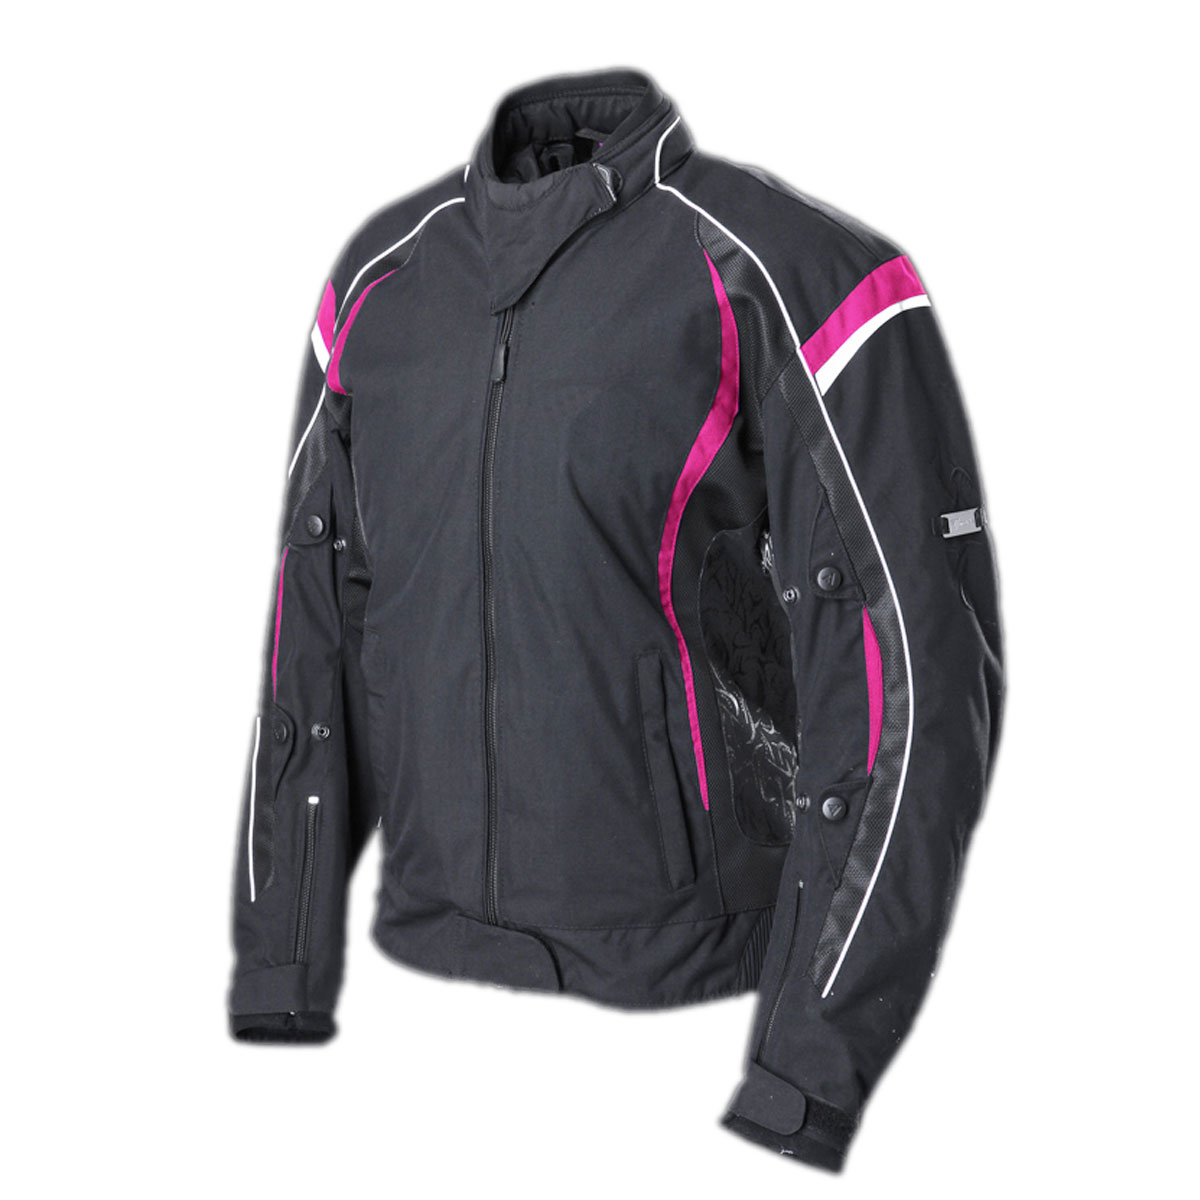 BLACK FEMALE JACKET WITH PINK LINES